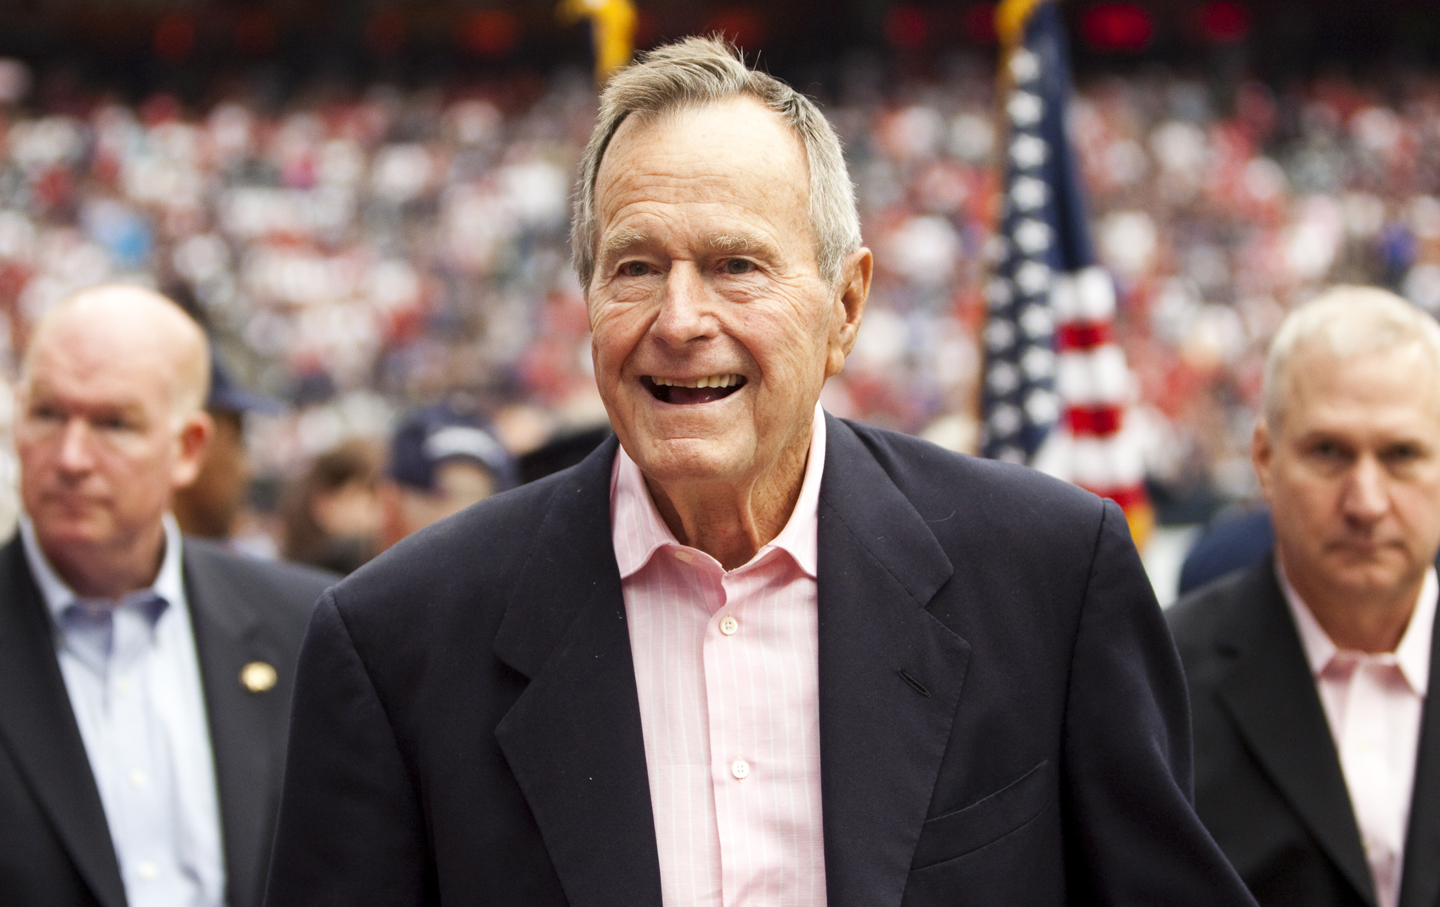 President George HW Bush in 2010